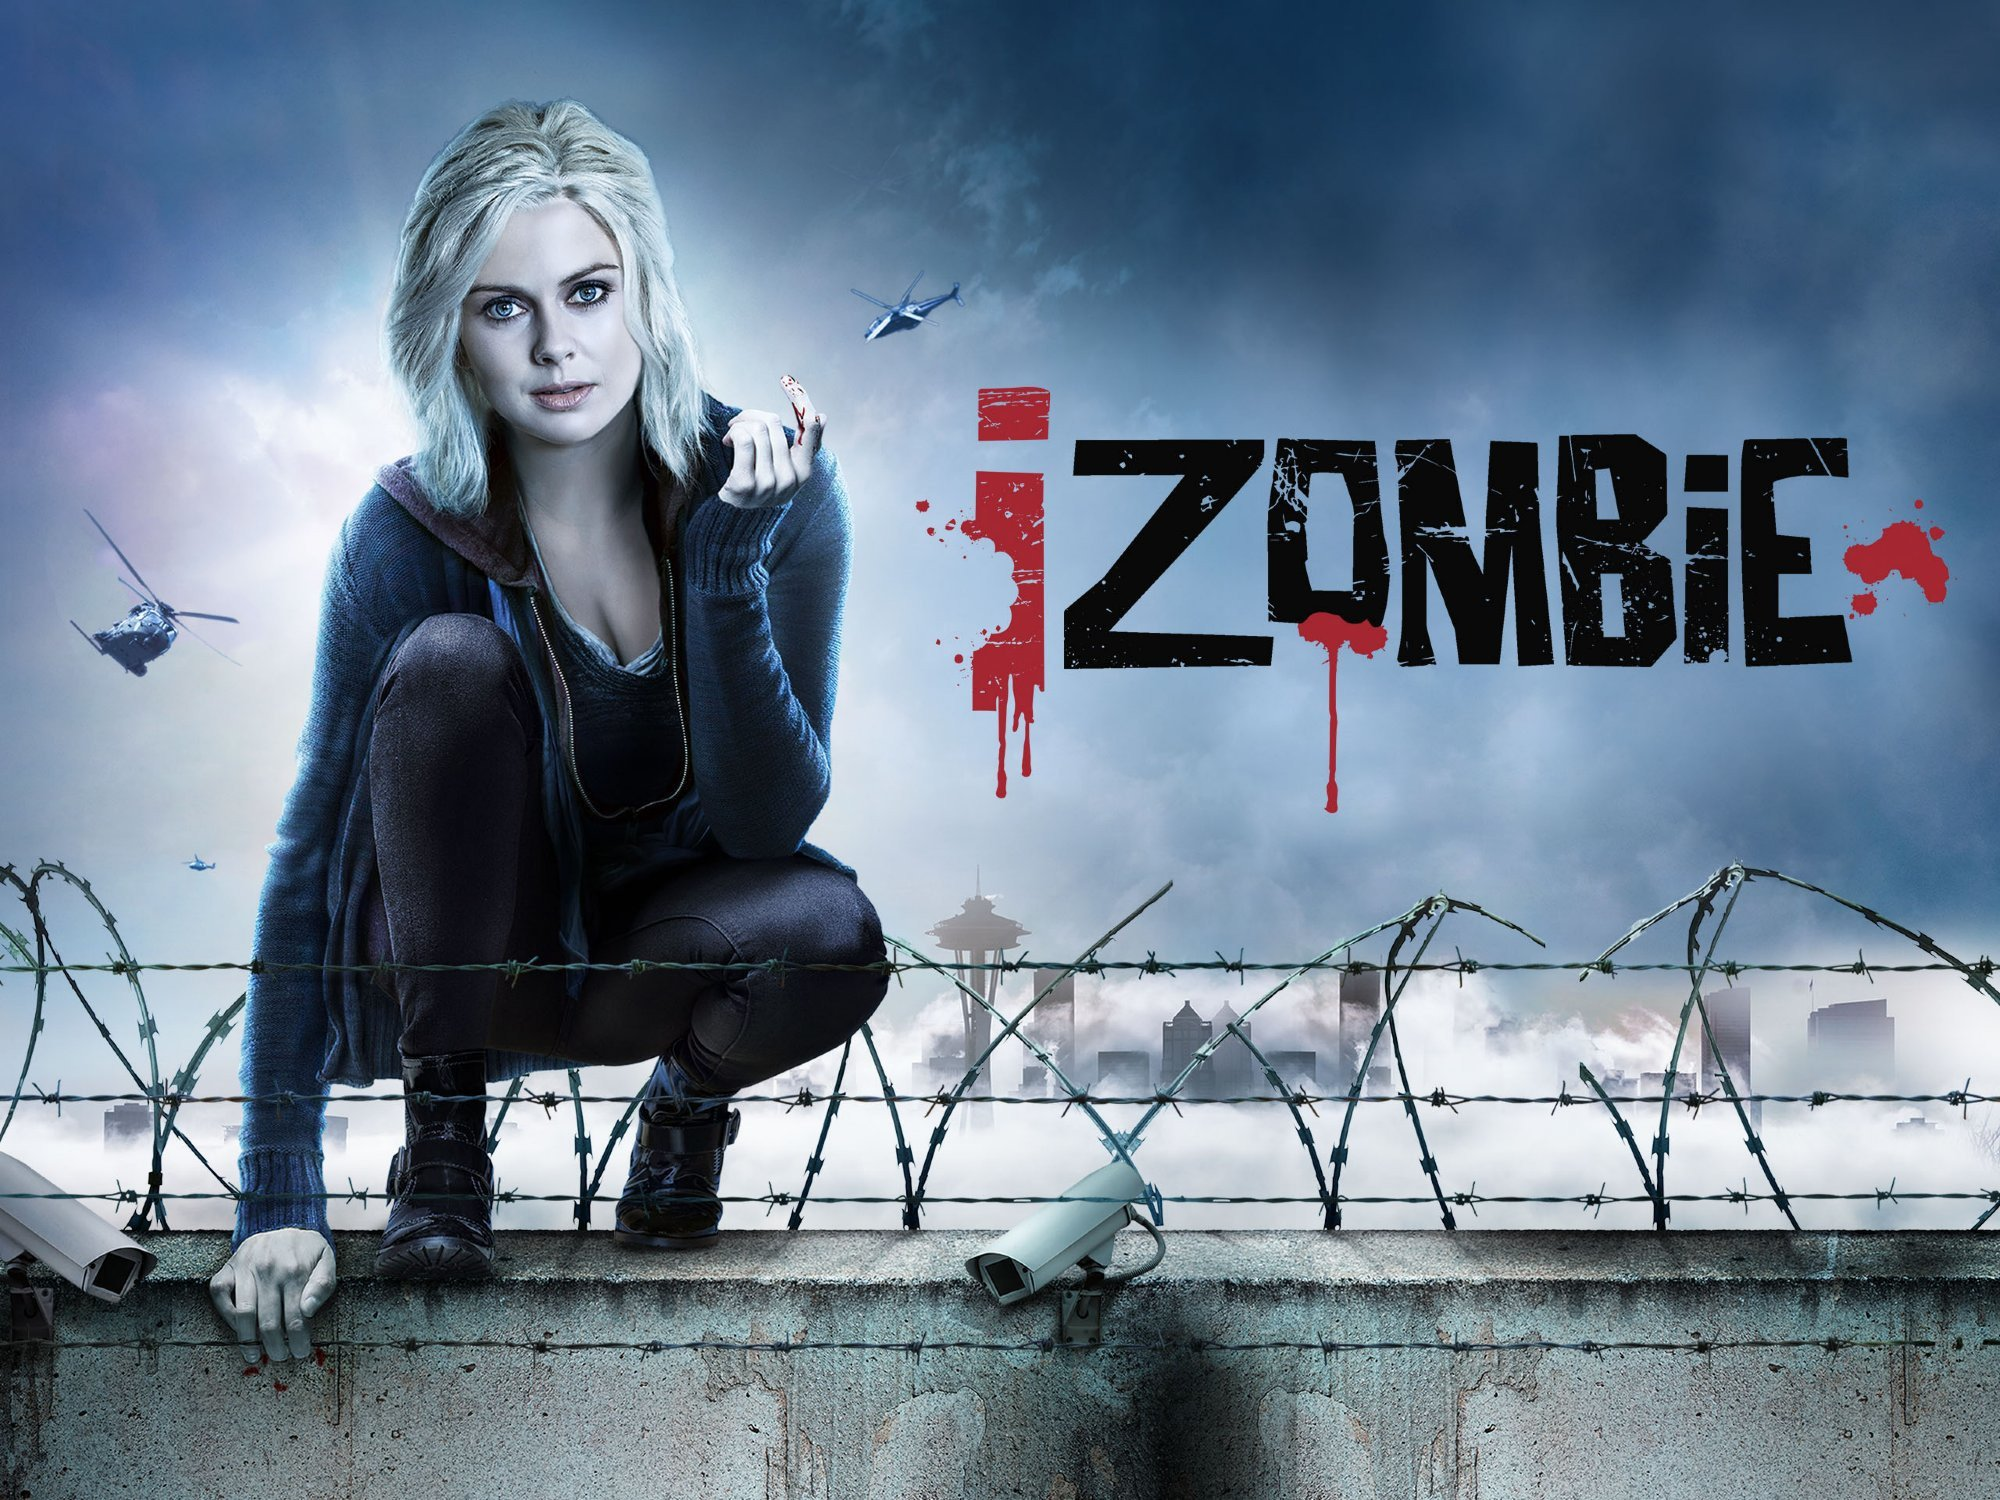 download izombie season 2 episode 1